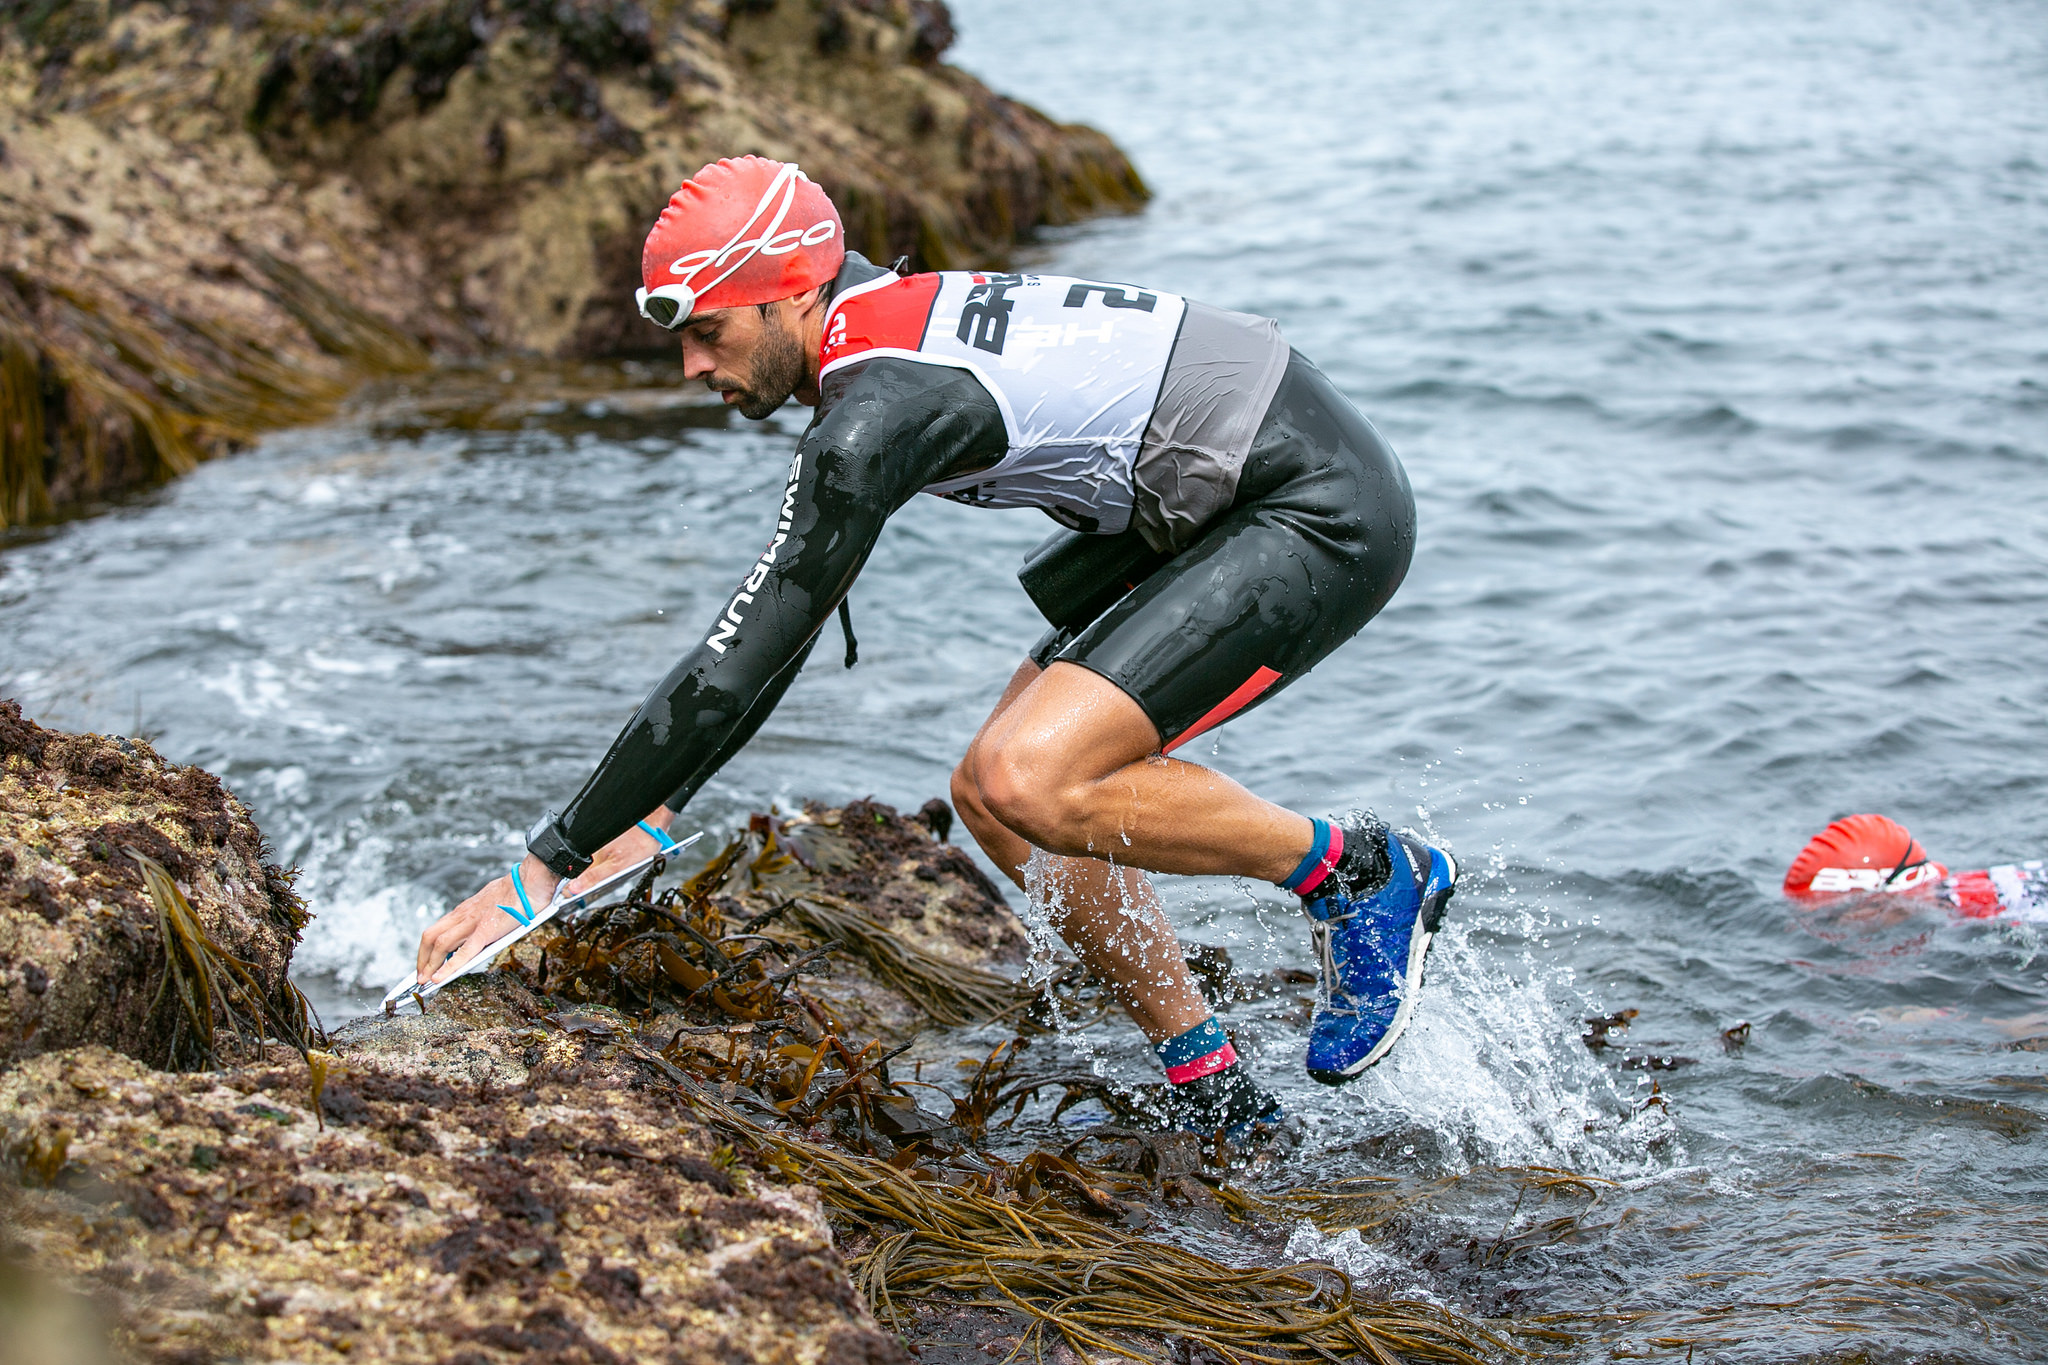 Sign up for Breca Jersey 2019 - 7th September 2019, 53.5km swimrun. Sign up now to enjoy our early-bird rates!Early-bird 1: £330 per team (Ends 1st March 2019)Early-bird 2: £350 per team (Ends 30th April 2019)Early-bird 3: £370 per teamEntry fees are for a team of two+3.75% Trumin processing fee for all tiers